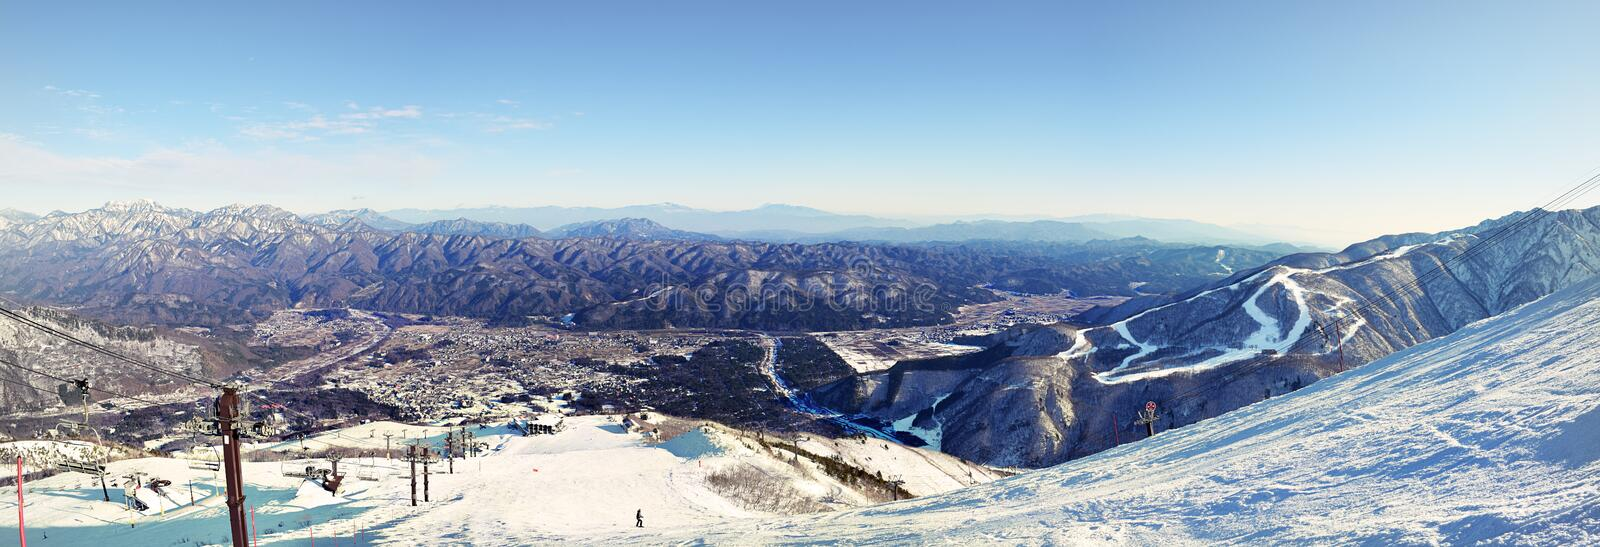 Hakuba town nestled between the mountain ranges. Hakuba town nestled between the snow covered mountain ranges early in the winter season. A popular ski slope in stock images